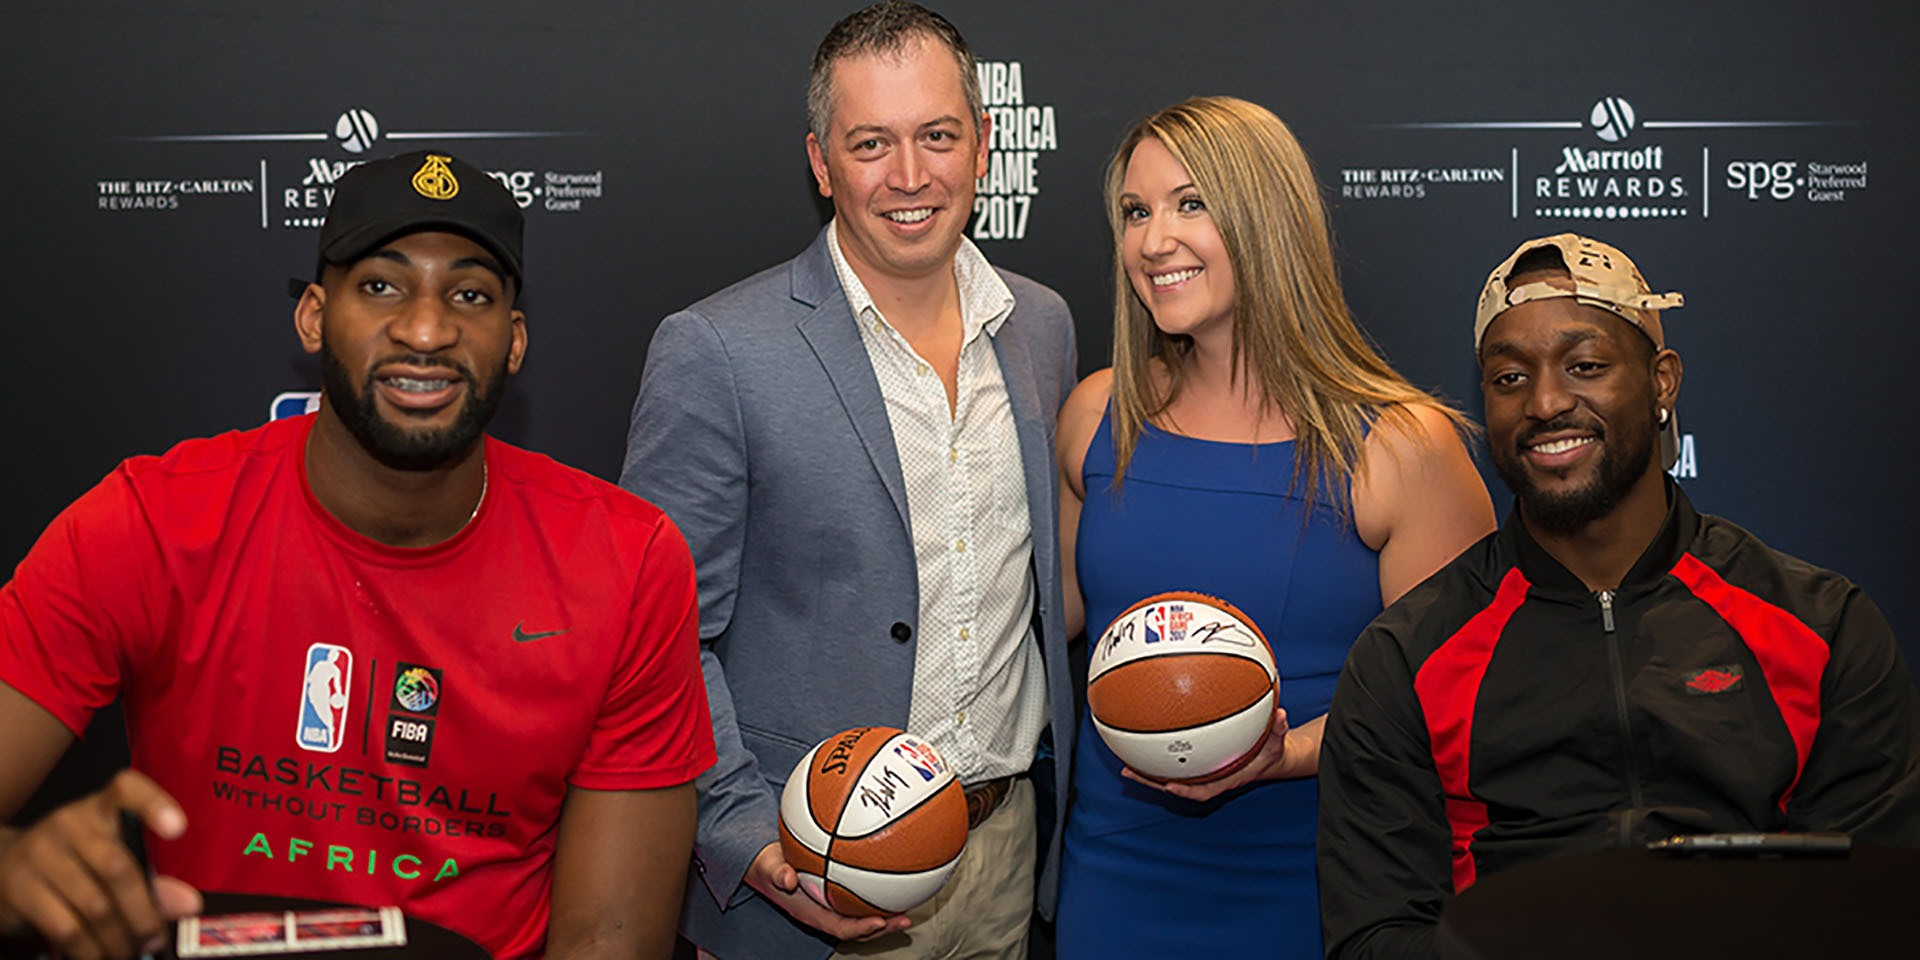 NBA players Andre Drummond and Kemba Walker mingled with members of Marriott Rewards and SPG at a private event at the African Pride Melrose Arch Hotel in Johannesburg, South Africa, to celebrate NBA Africa Game 2017